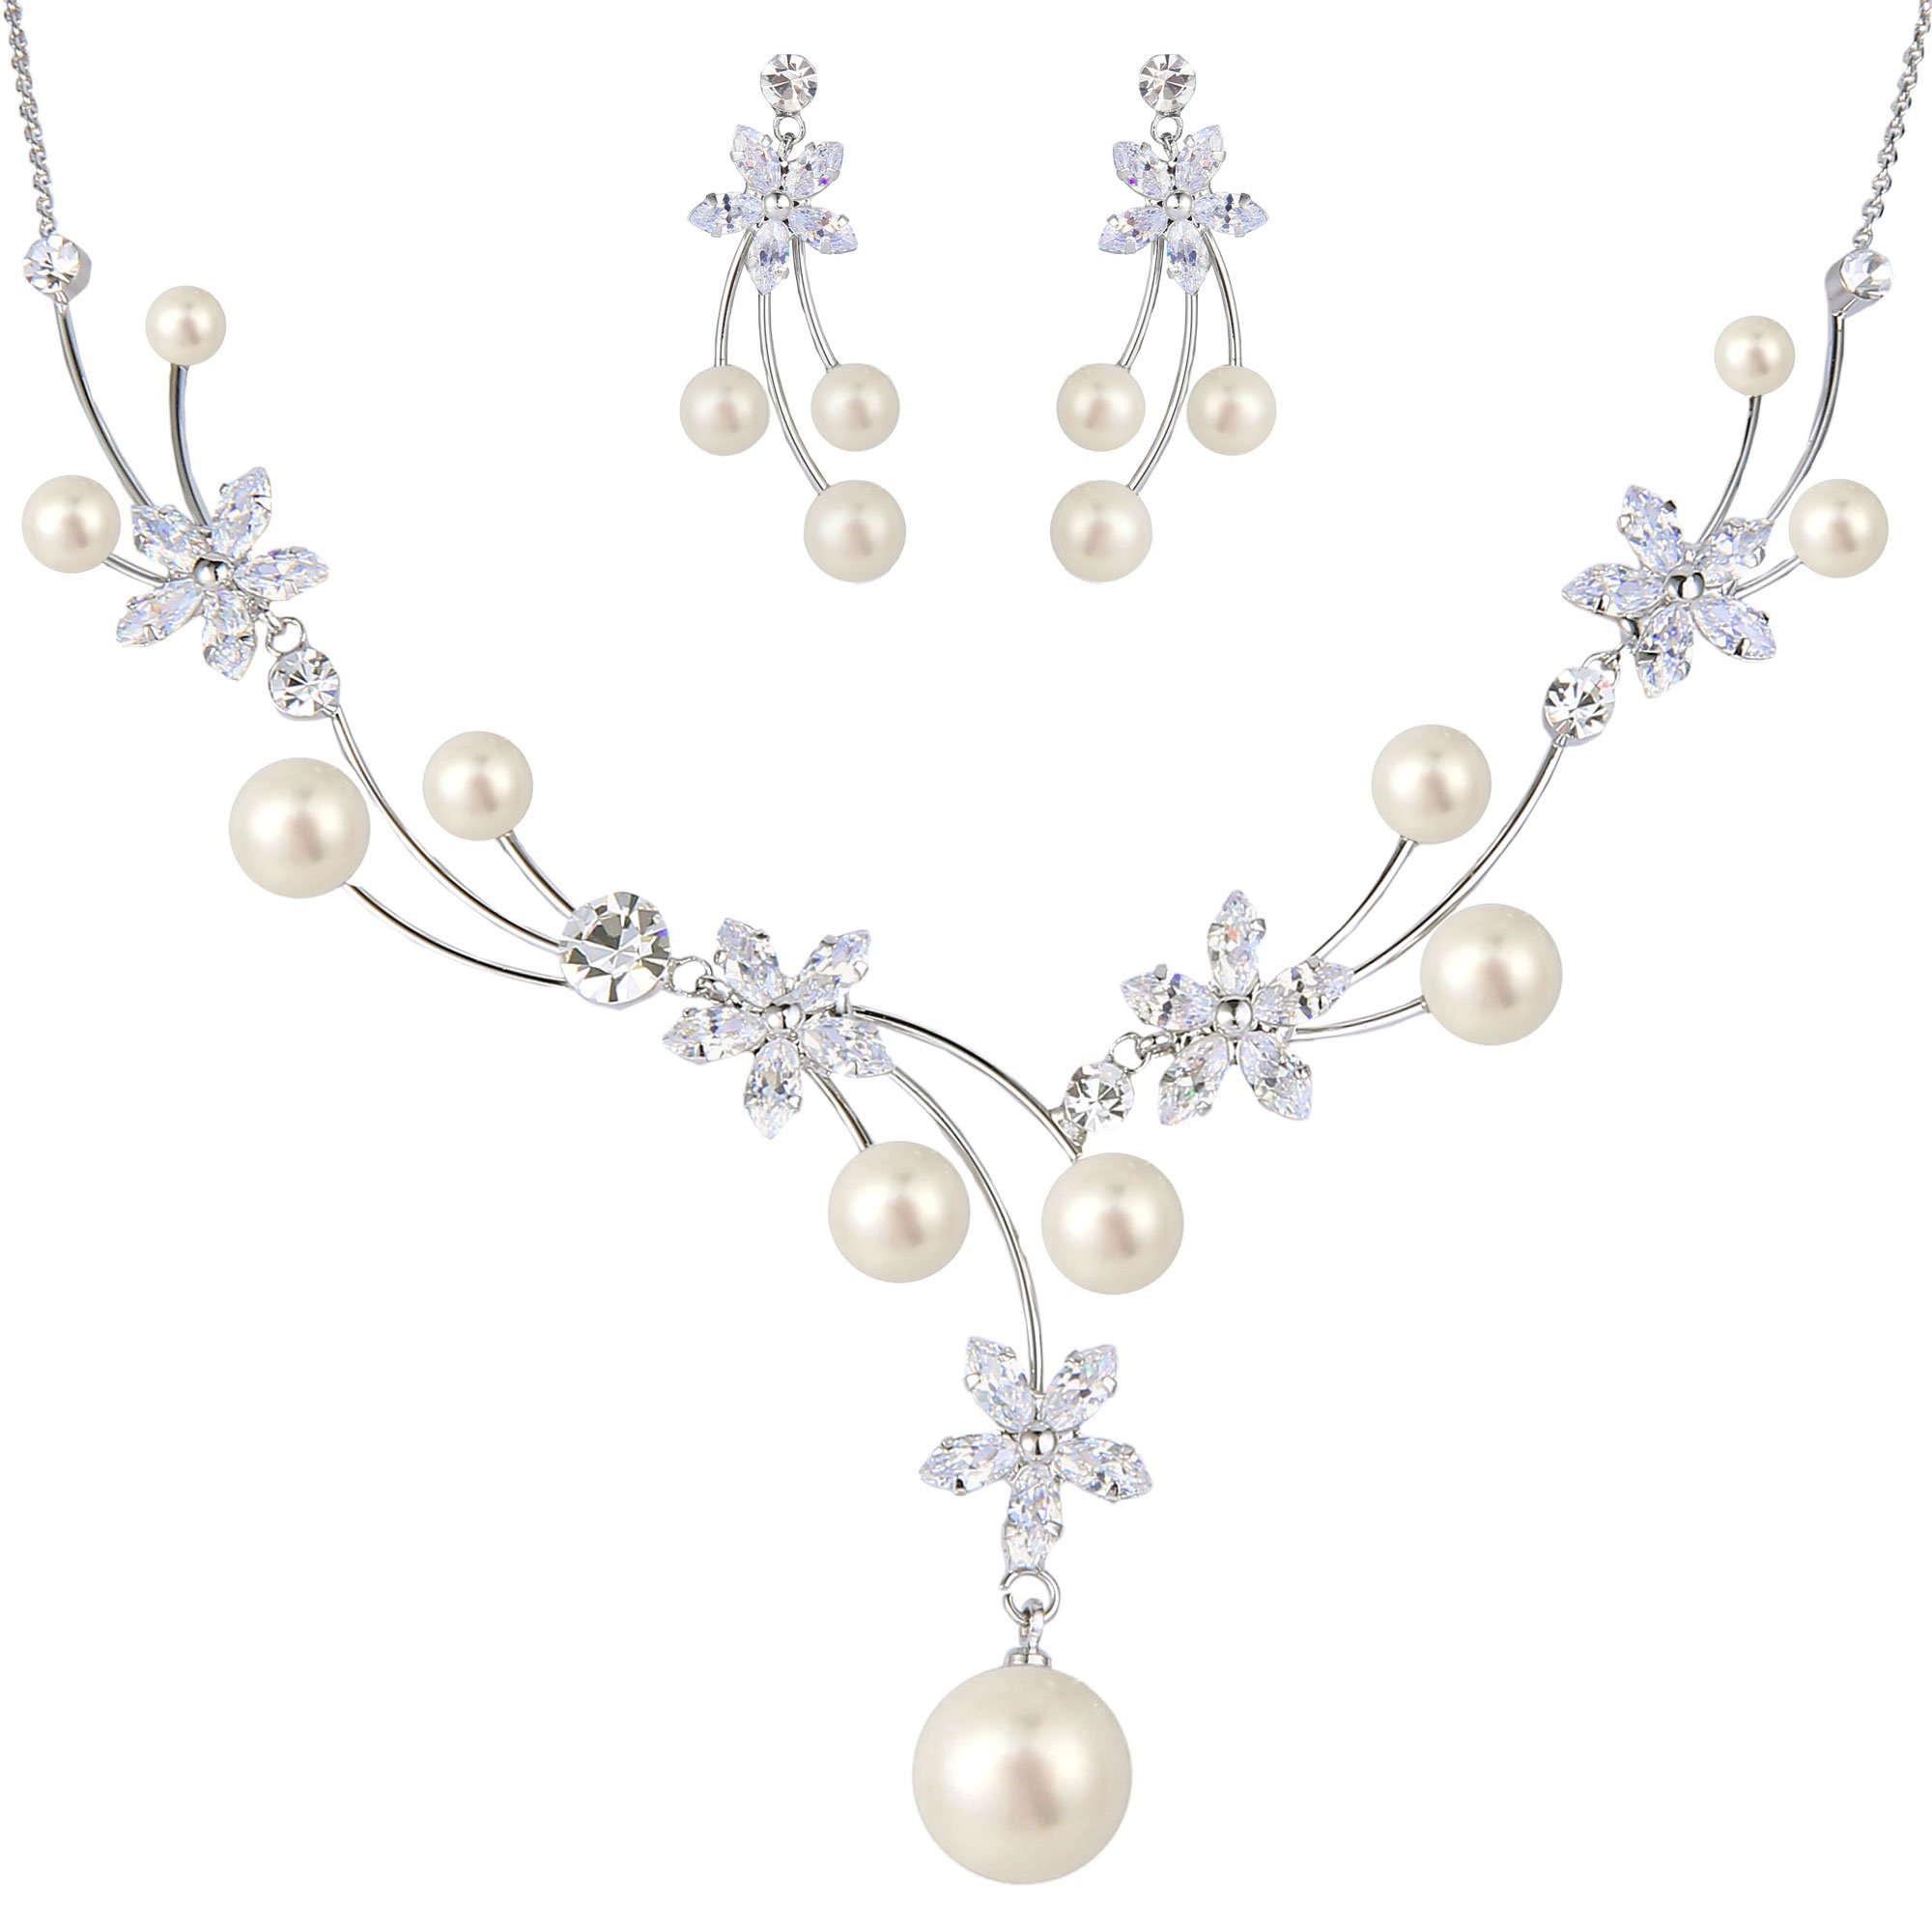 EleQueen Women's Silver-tone CZ Simulated Pearl Flower Filigree Bridal Necklace Earrings Set Ivory Color